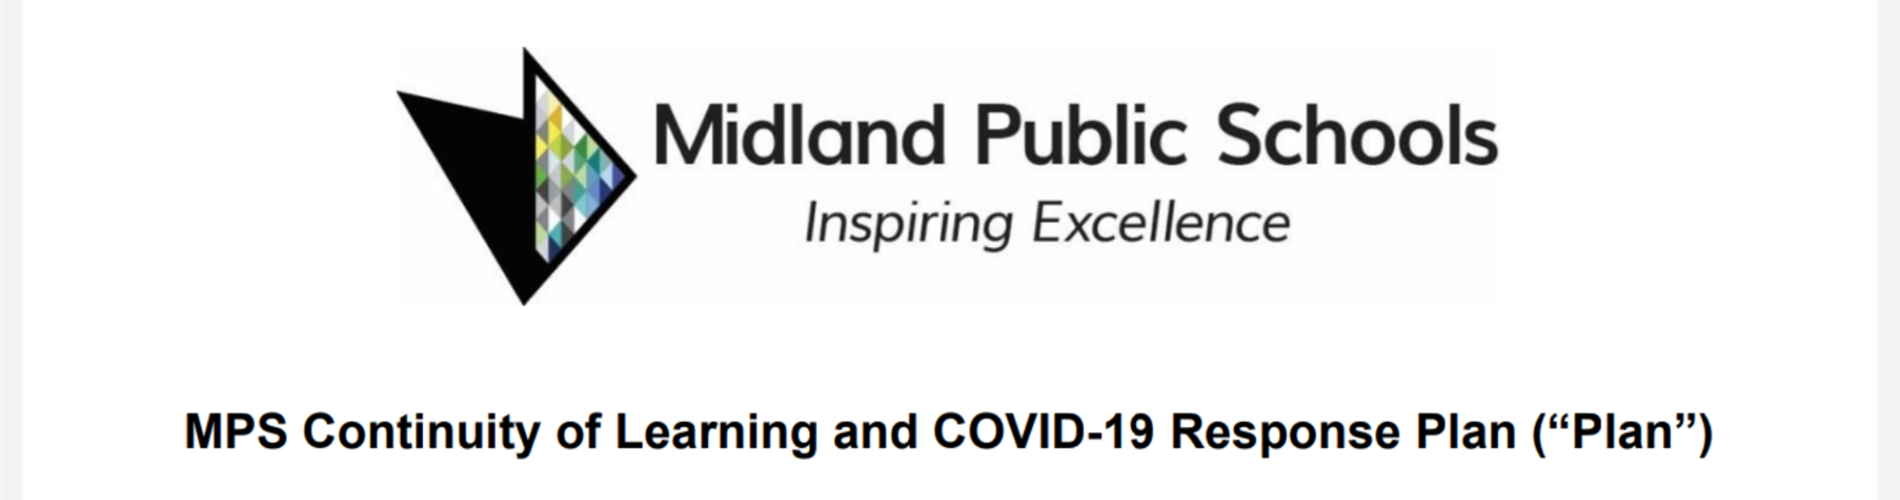 MPS Continuity of Learning and COVID-19 Response Plan